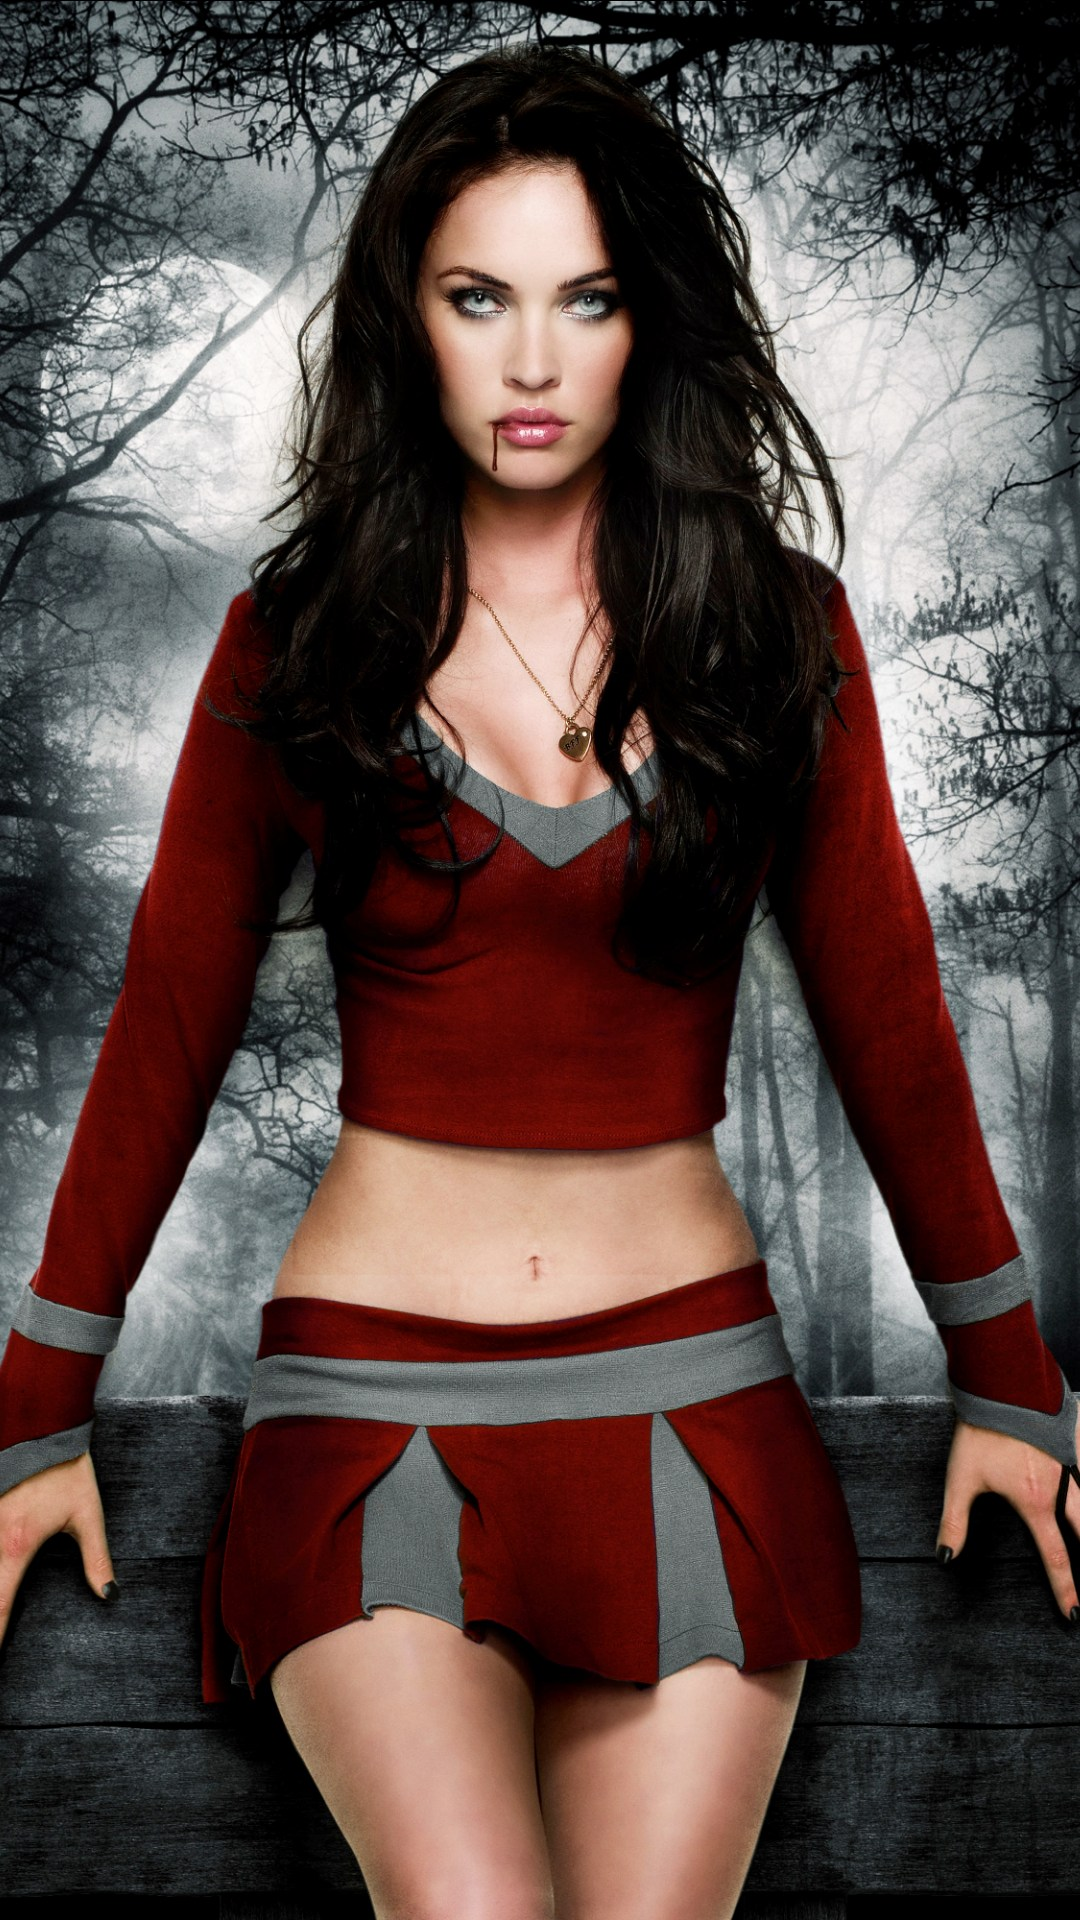 megan fox with red blood wallpapers - 1080x1920 - 476618